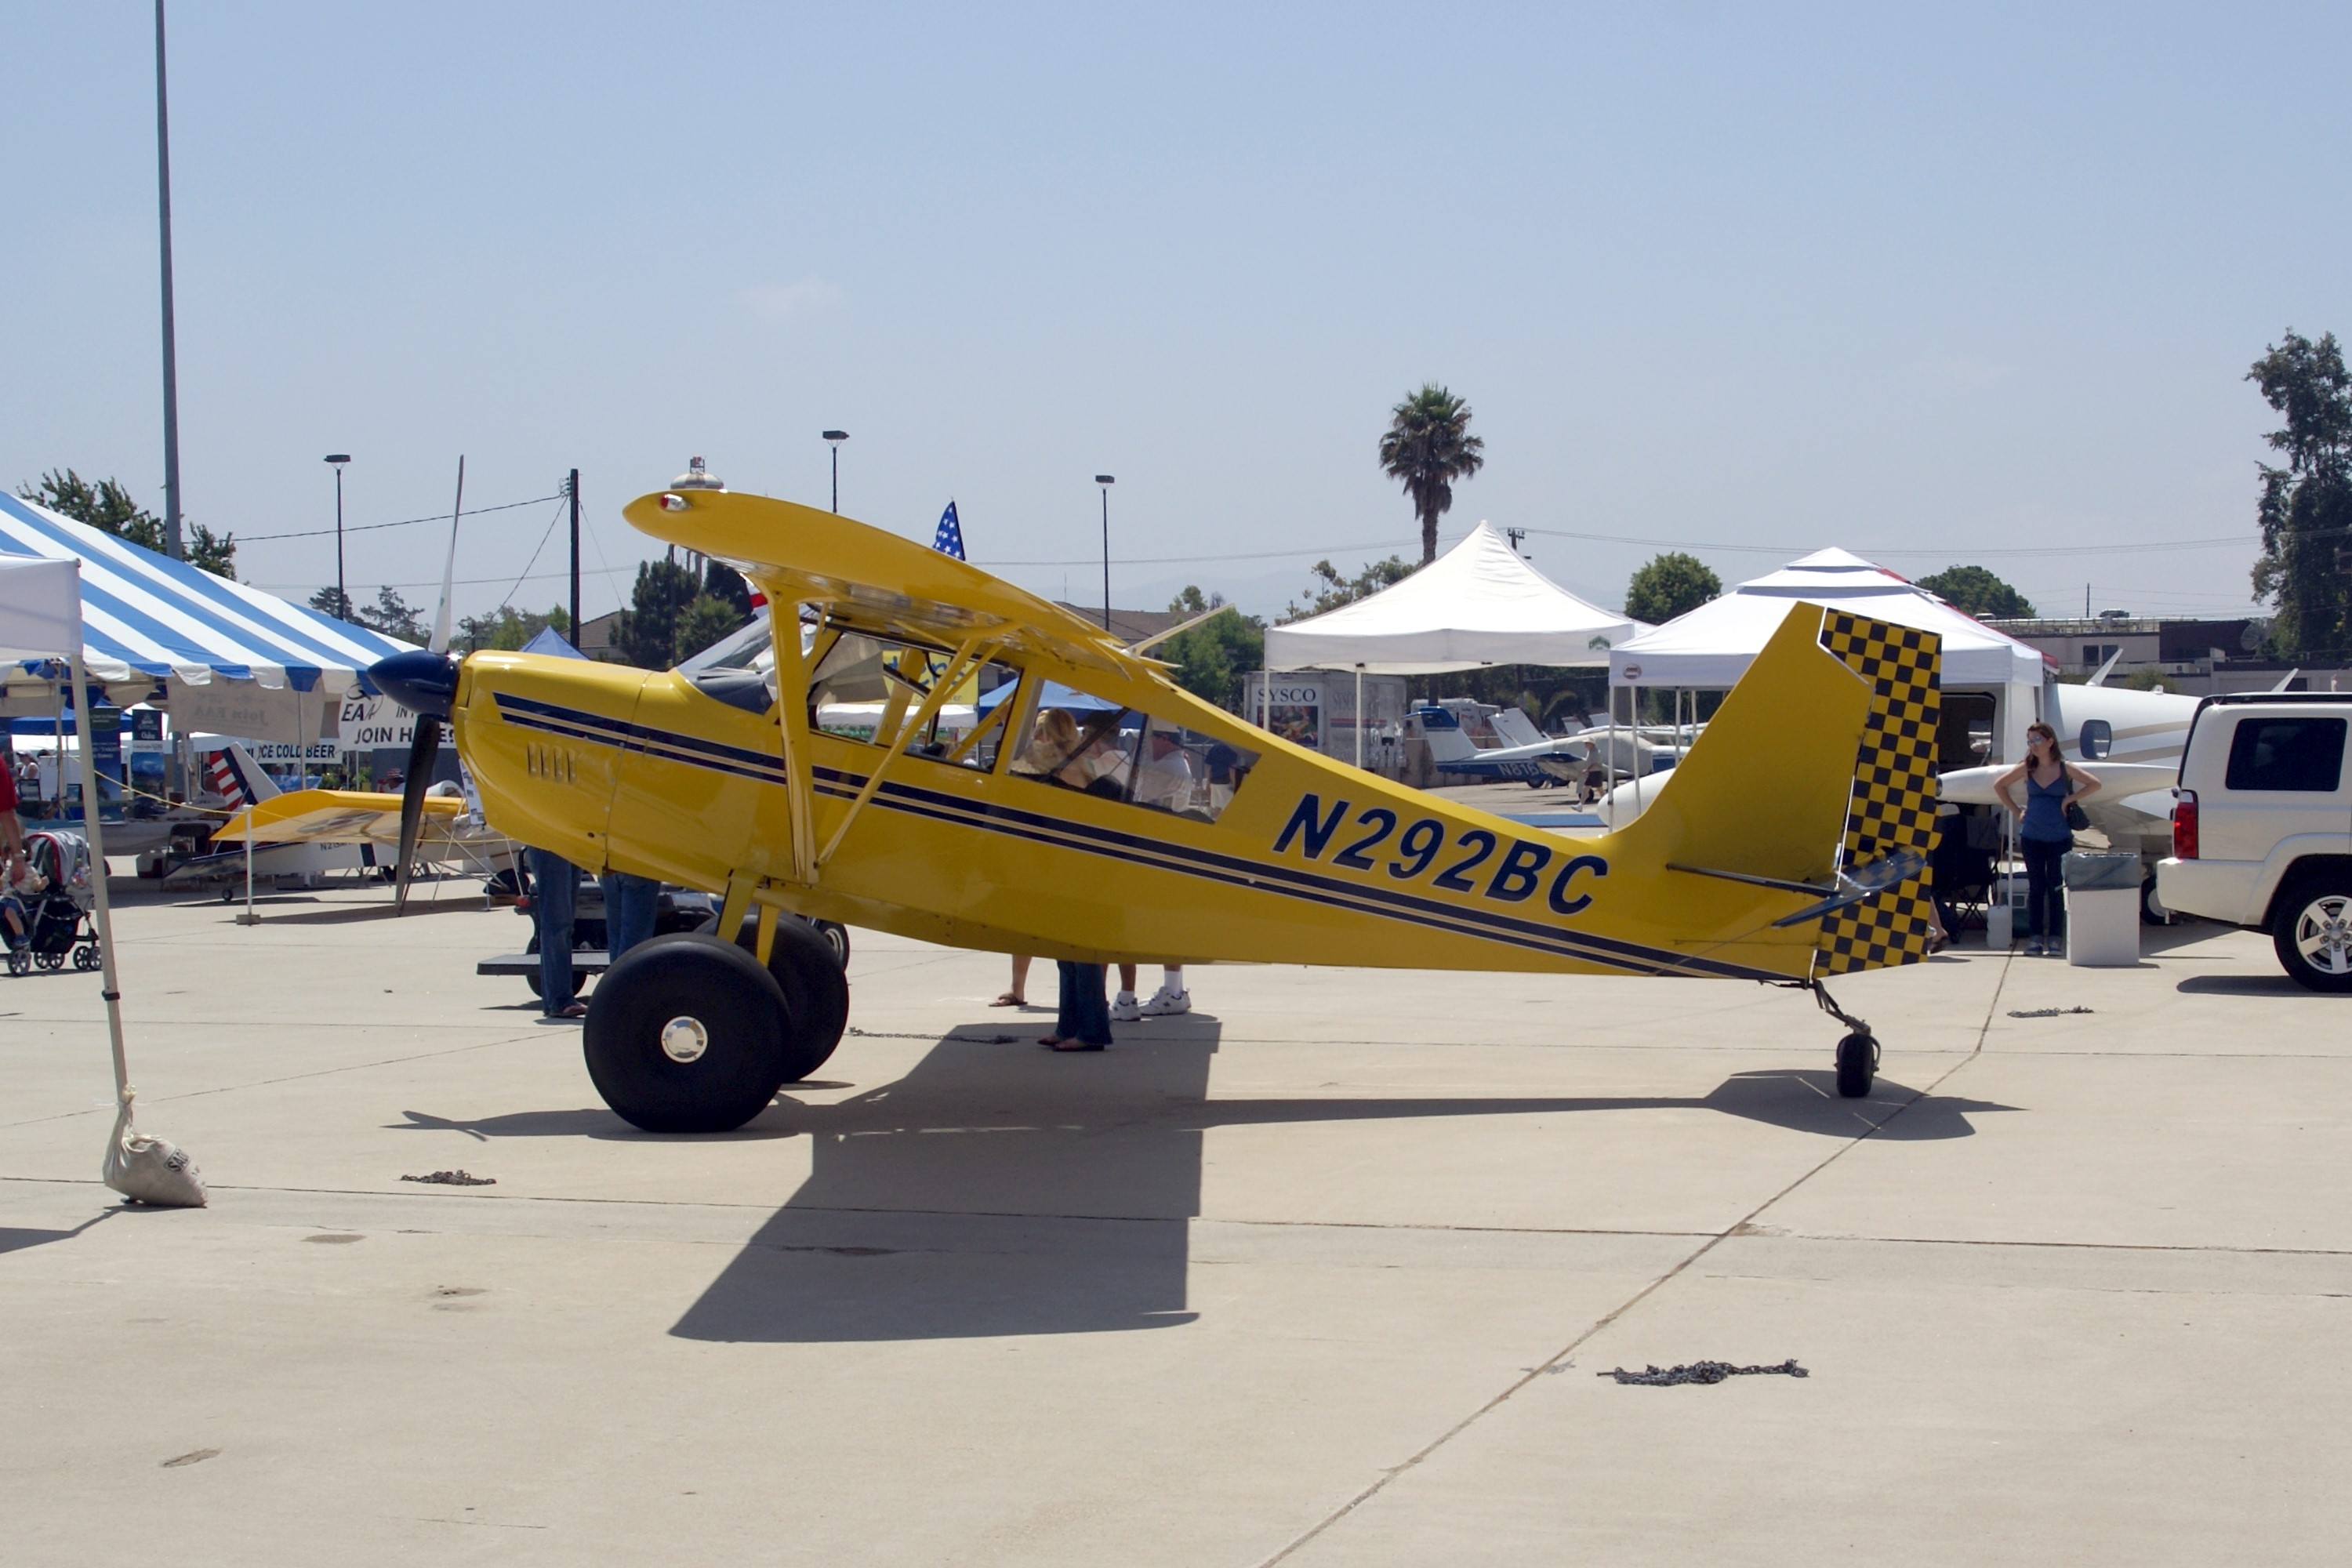 Aircraft G-IIIJ (2010 American Champion 8GCBC Scout Scout